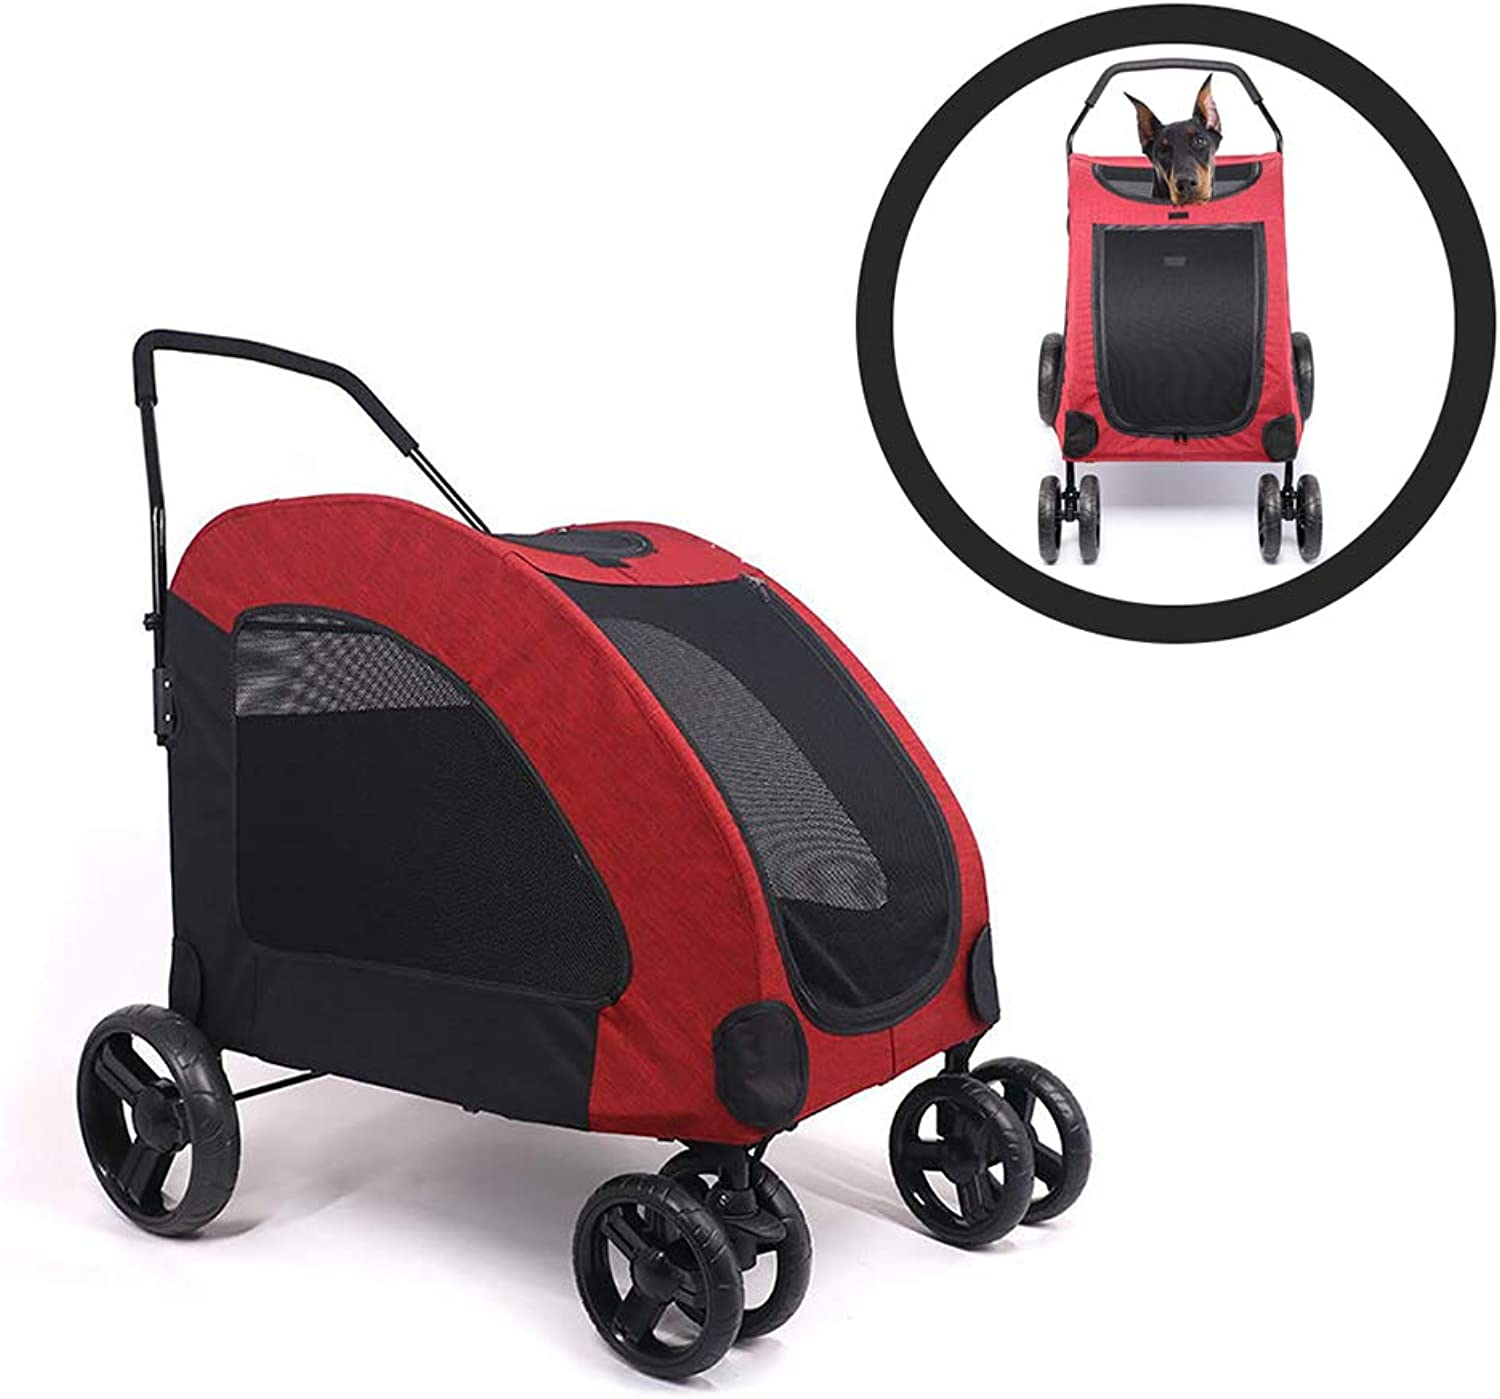 DJLOOKK Pet FourWheeled Stroller Cat Dog Stroller Foldable Extra Large Pet Stroller Dog Trolley With Top Window For Medium Large Dogs Outgoing, Load Within 60Kg,Red